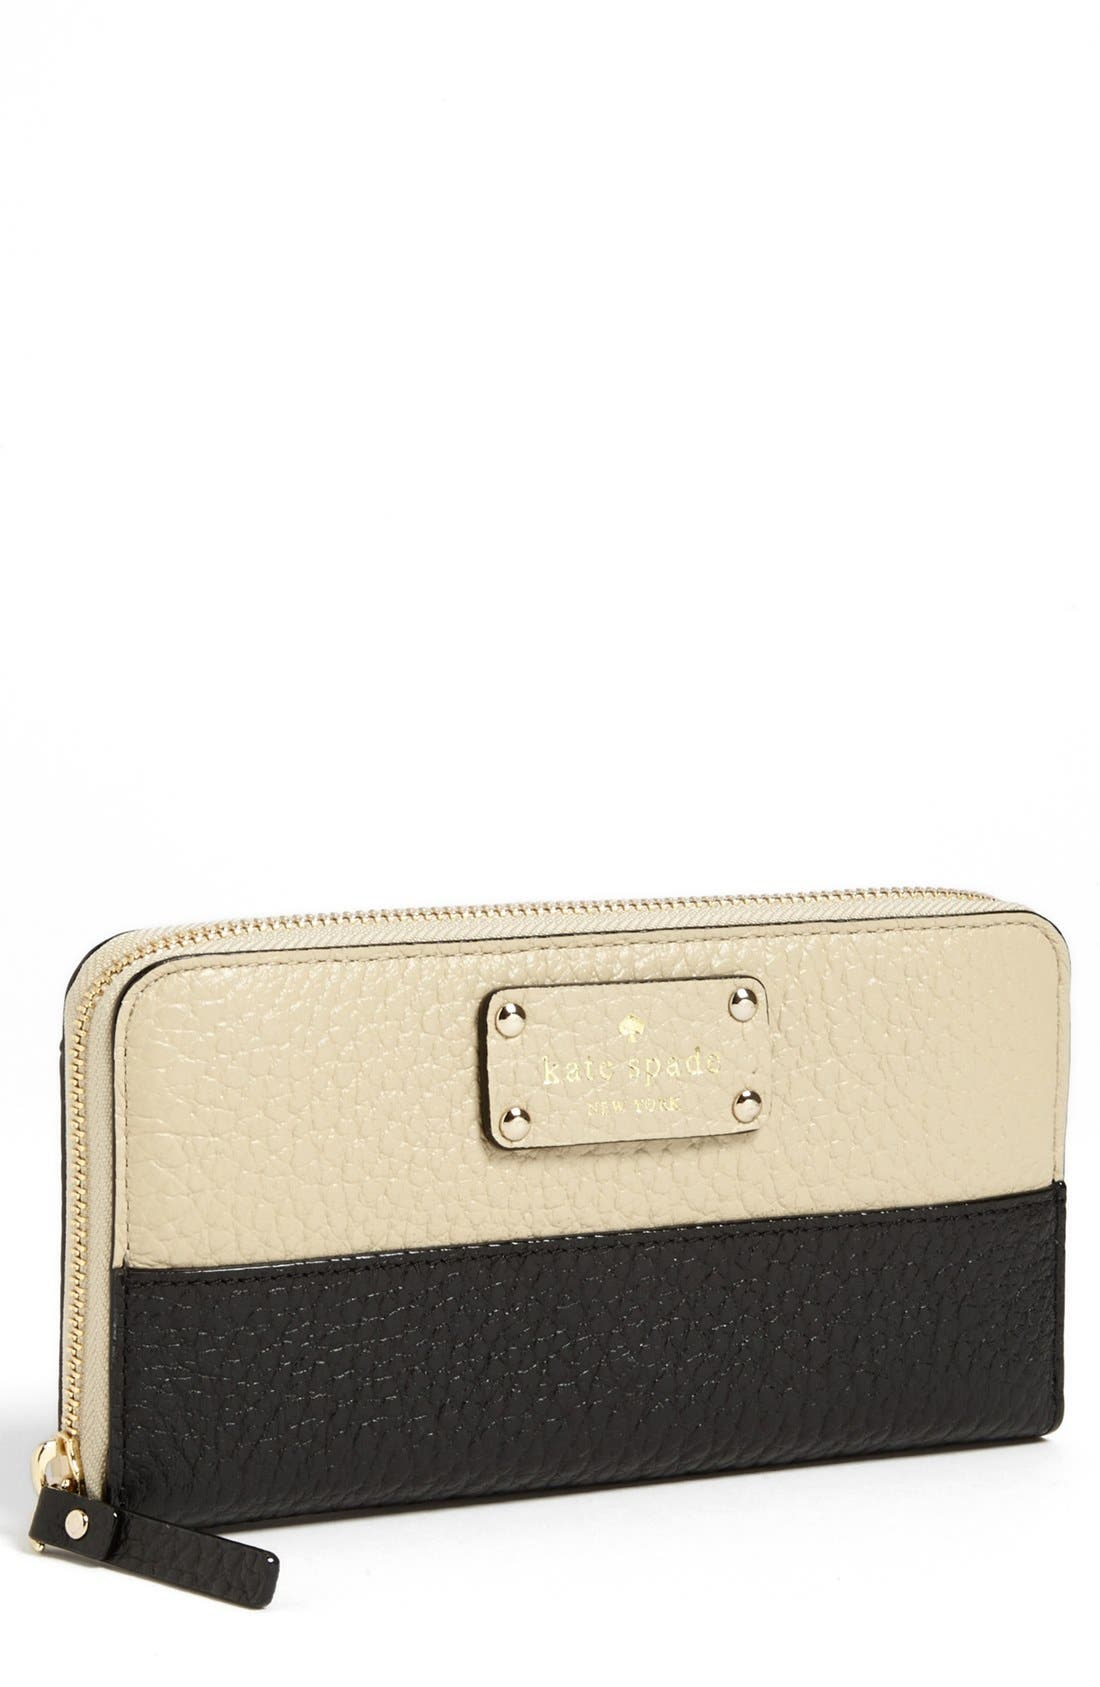 Main Image - kate spade new york 'grove court - lacey' zip around wallet